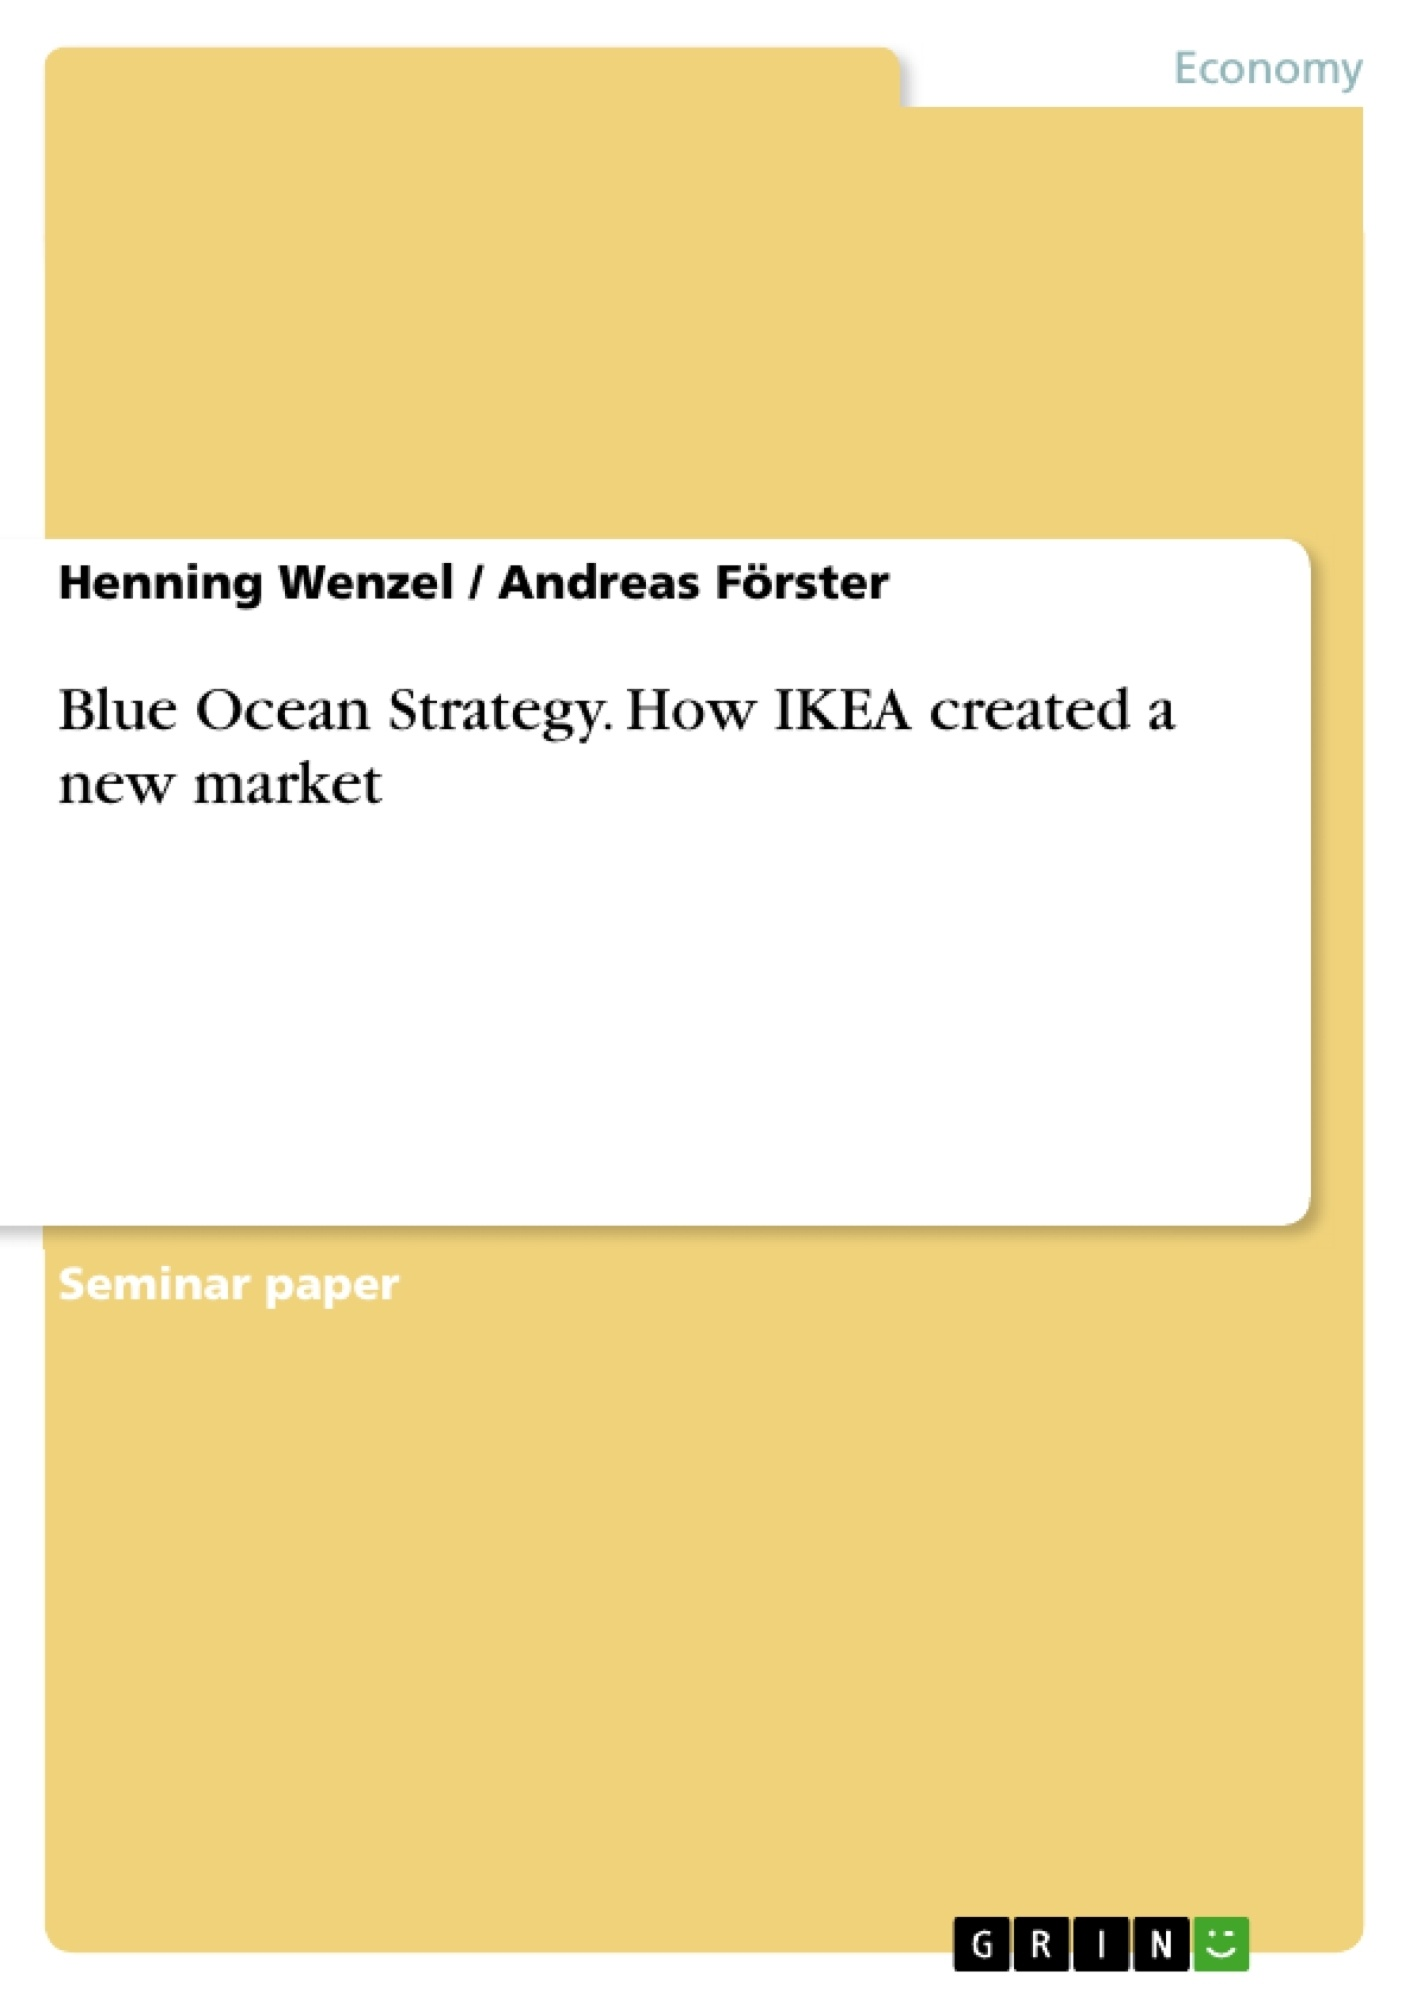 "ikea communication essay Integrated marketing communications campaign leyda hernández ikea""s target market and to stimulate communication between the ikea brand and its existing."